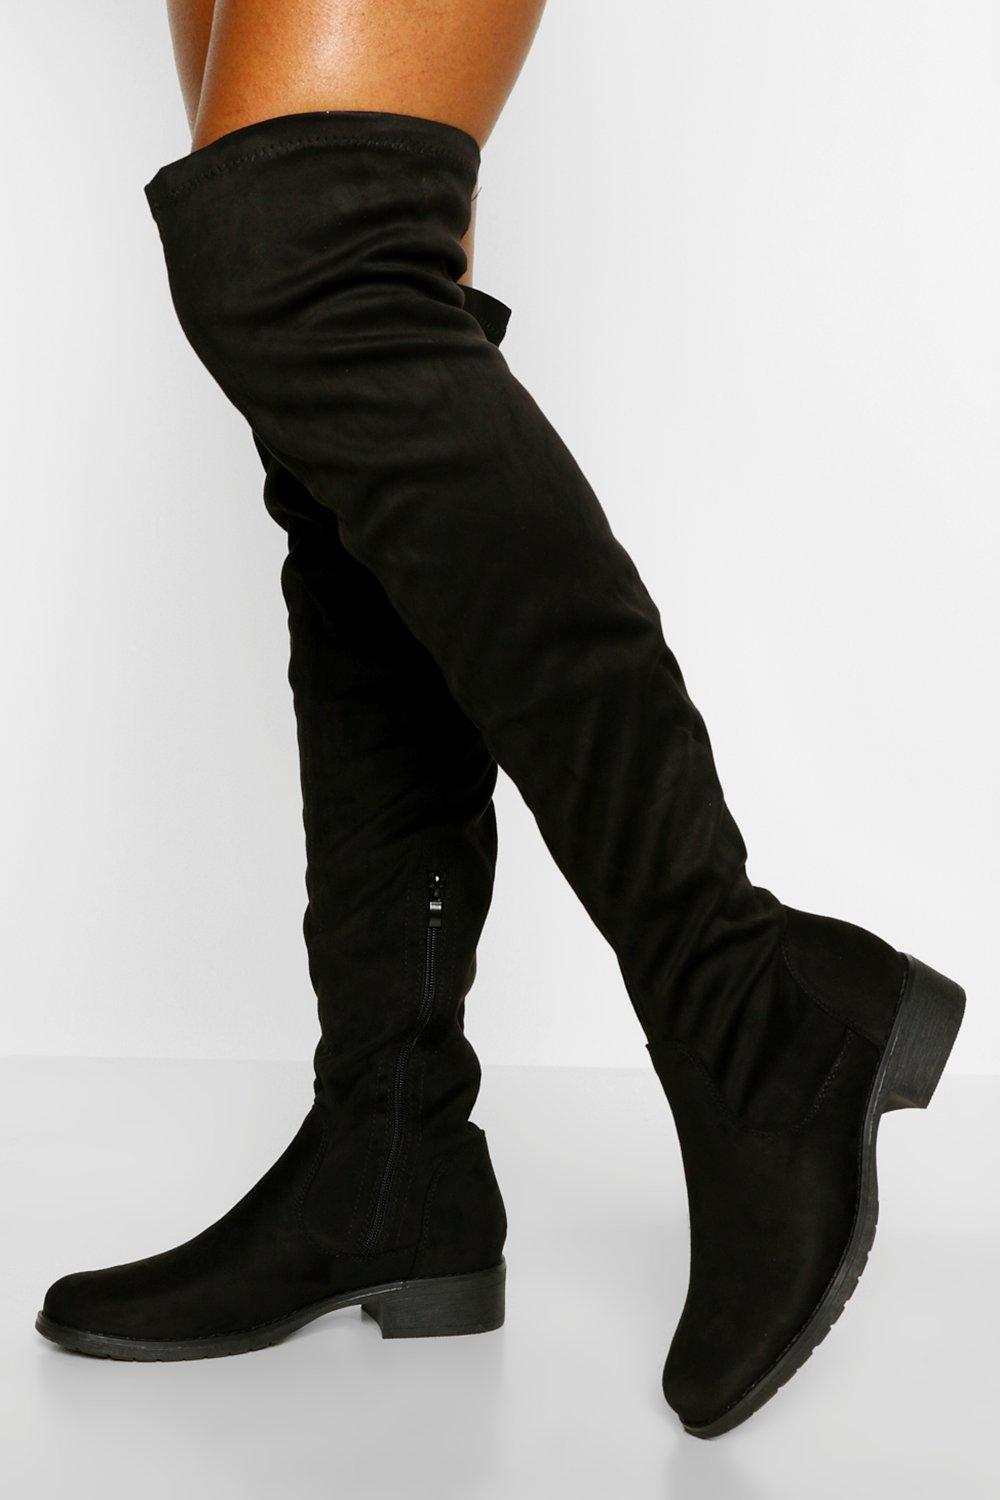 70s Shoes, Platforms, Boots, Heels | 1970s Shoes Womens Flat Over The Knee Boots - Black - 10 $33.00 AT vintagedancer.com